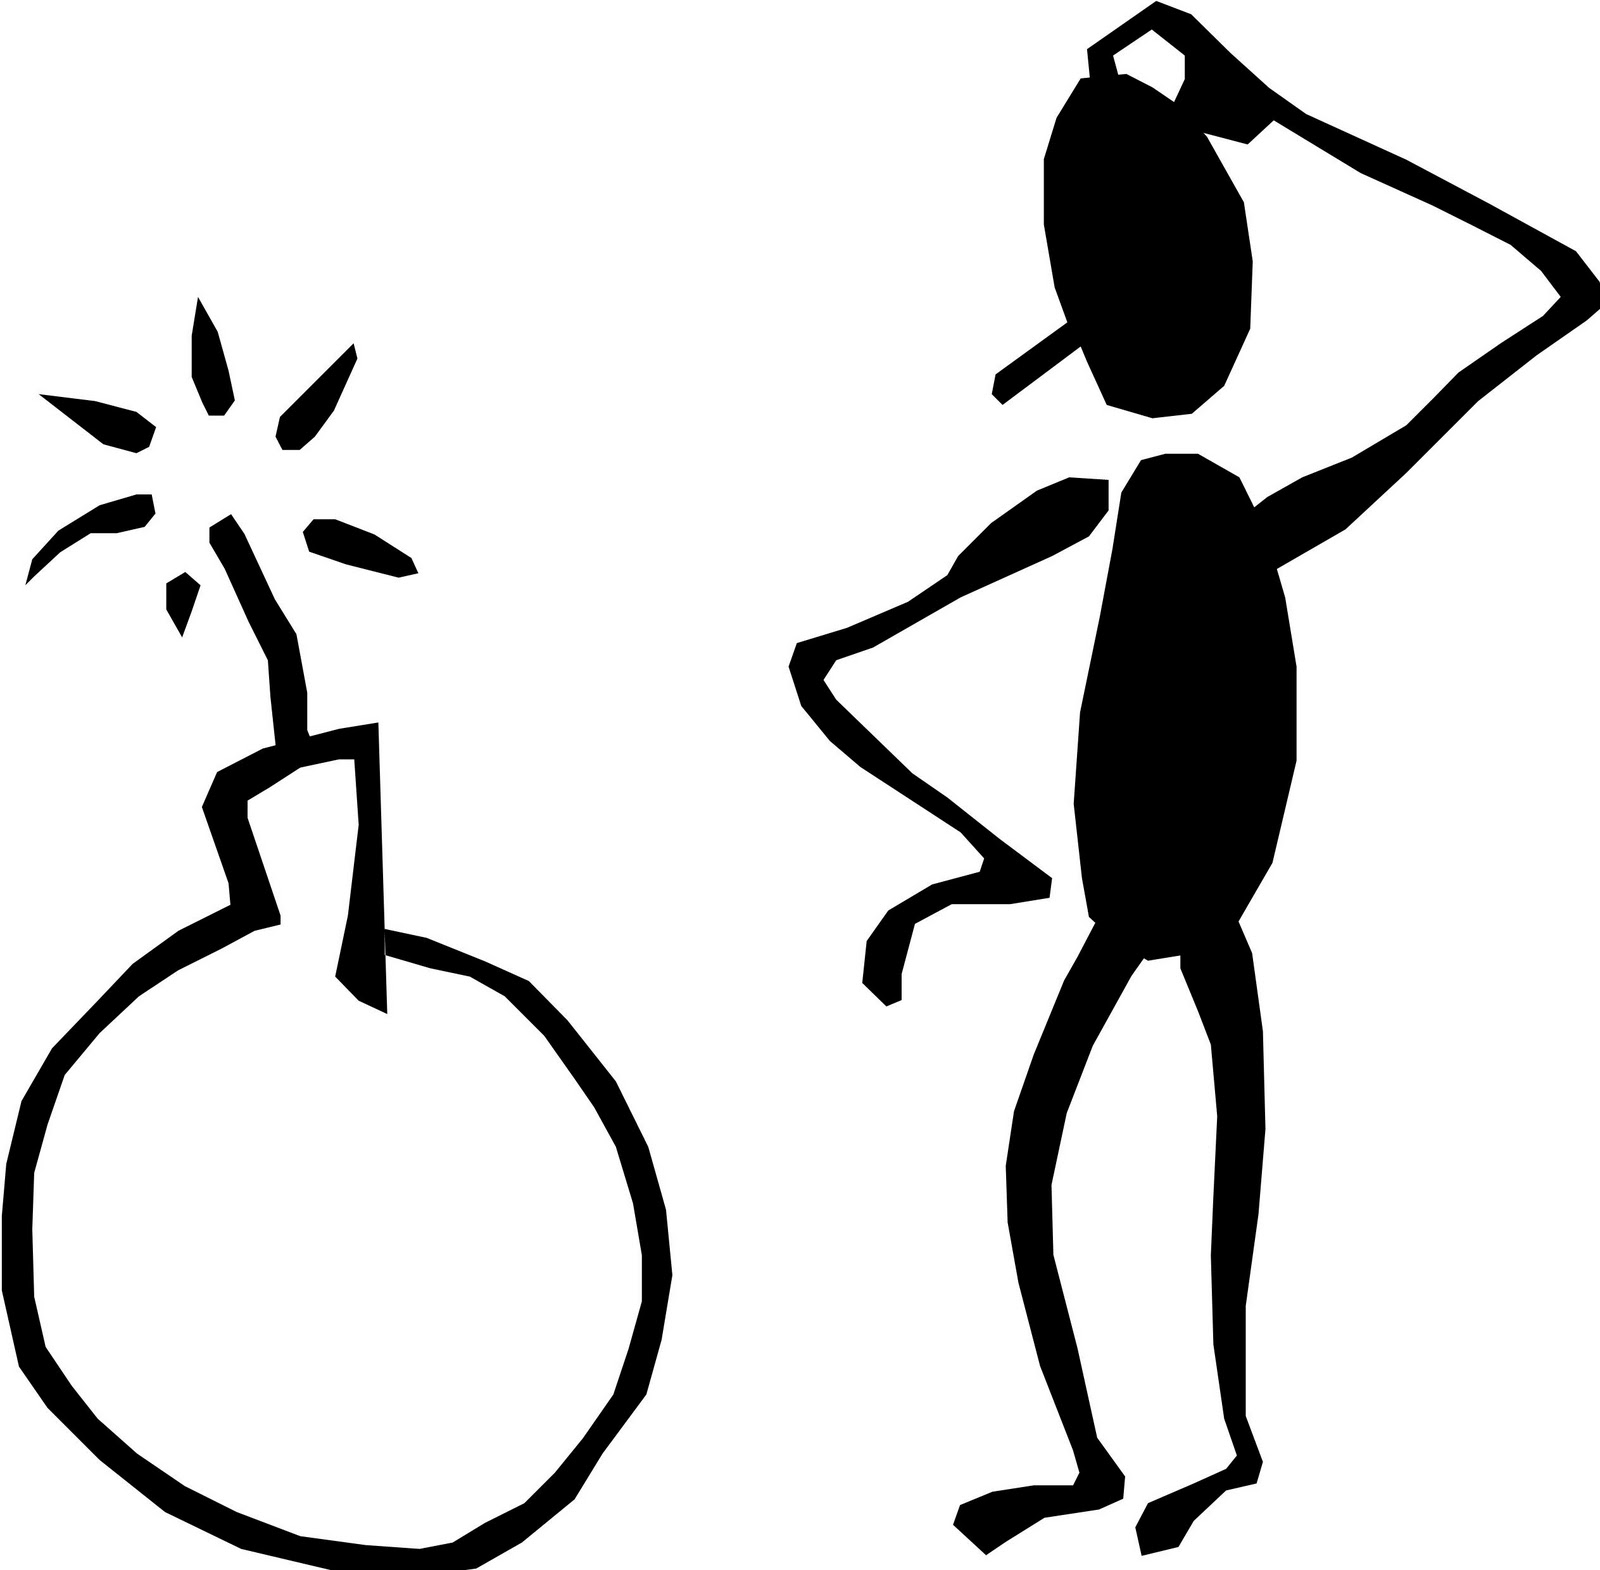 1600x1570 Thinking Stick Figure Clipart Clipart